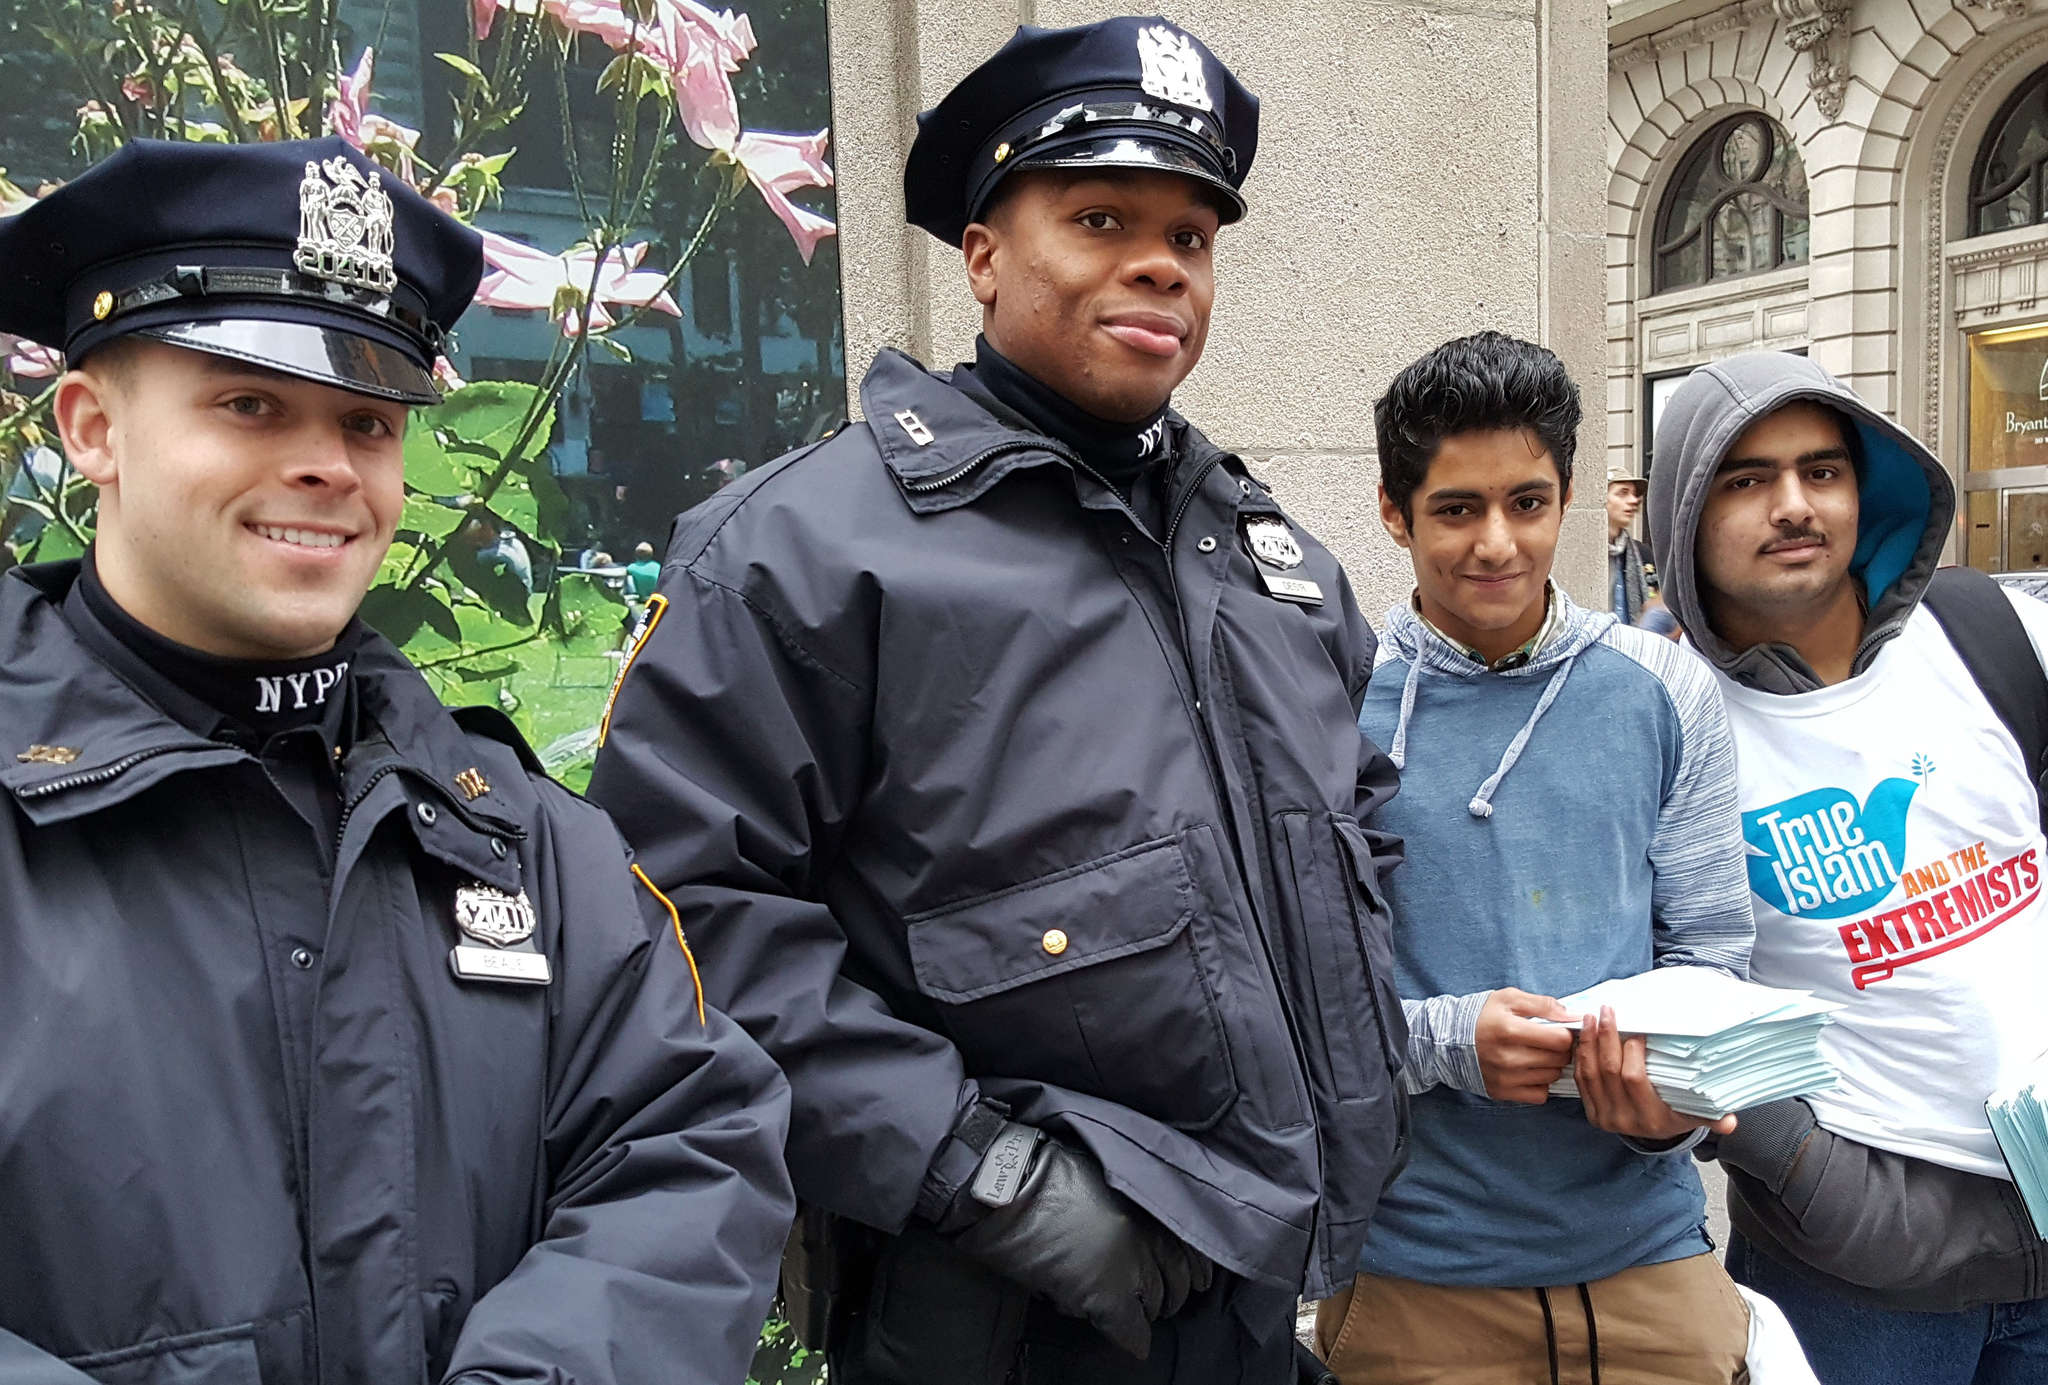 New York City cops, with members of the Ahmadiyya Muslim sect, who are distributing literature opposing Islamic extremism.